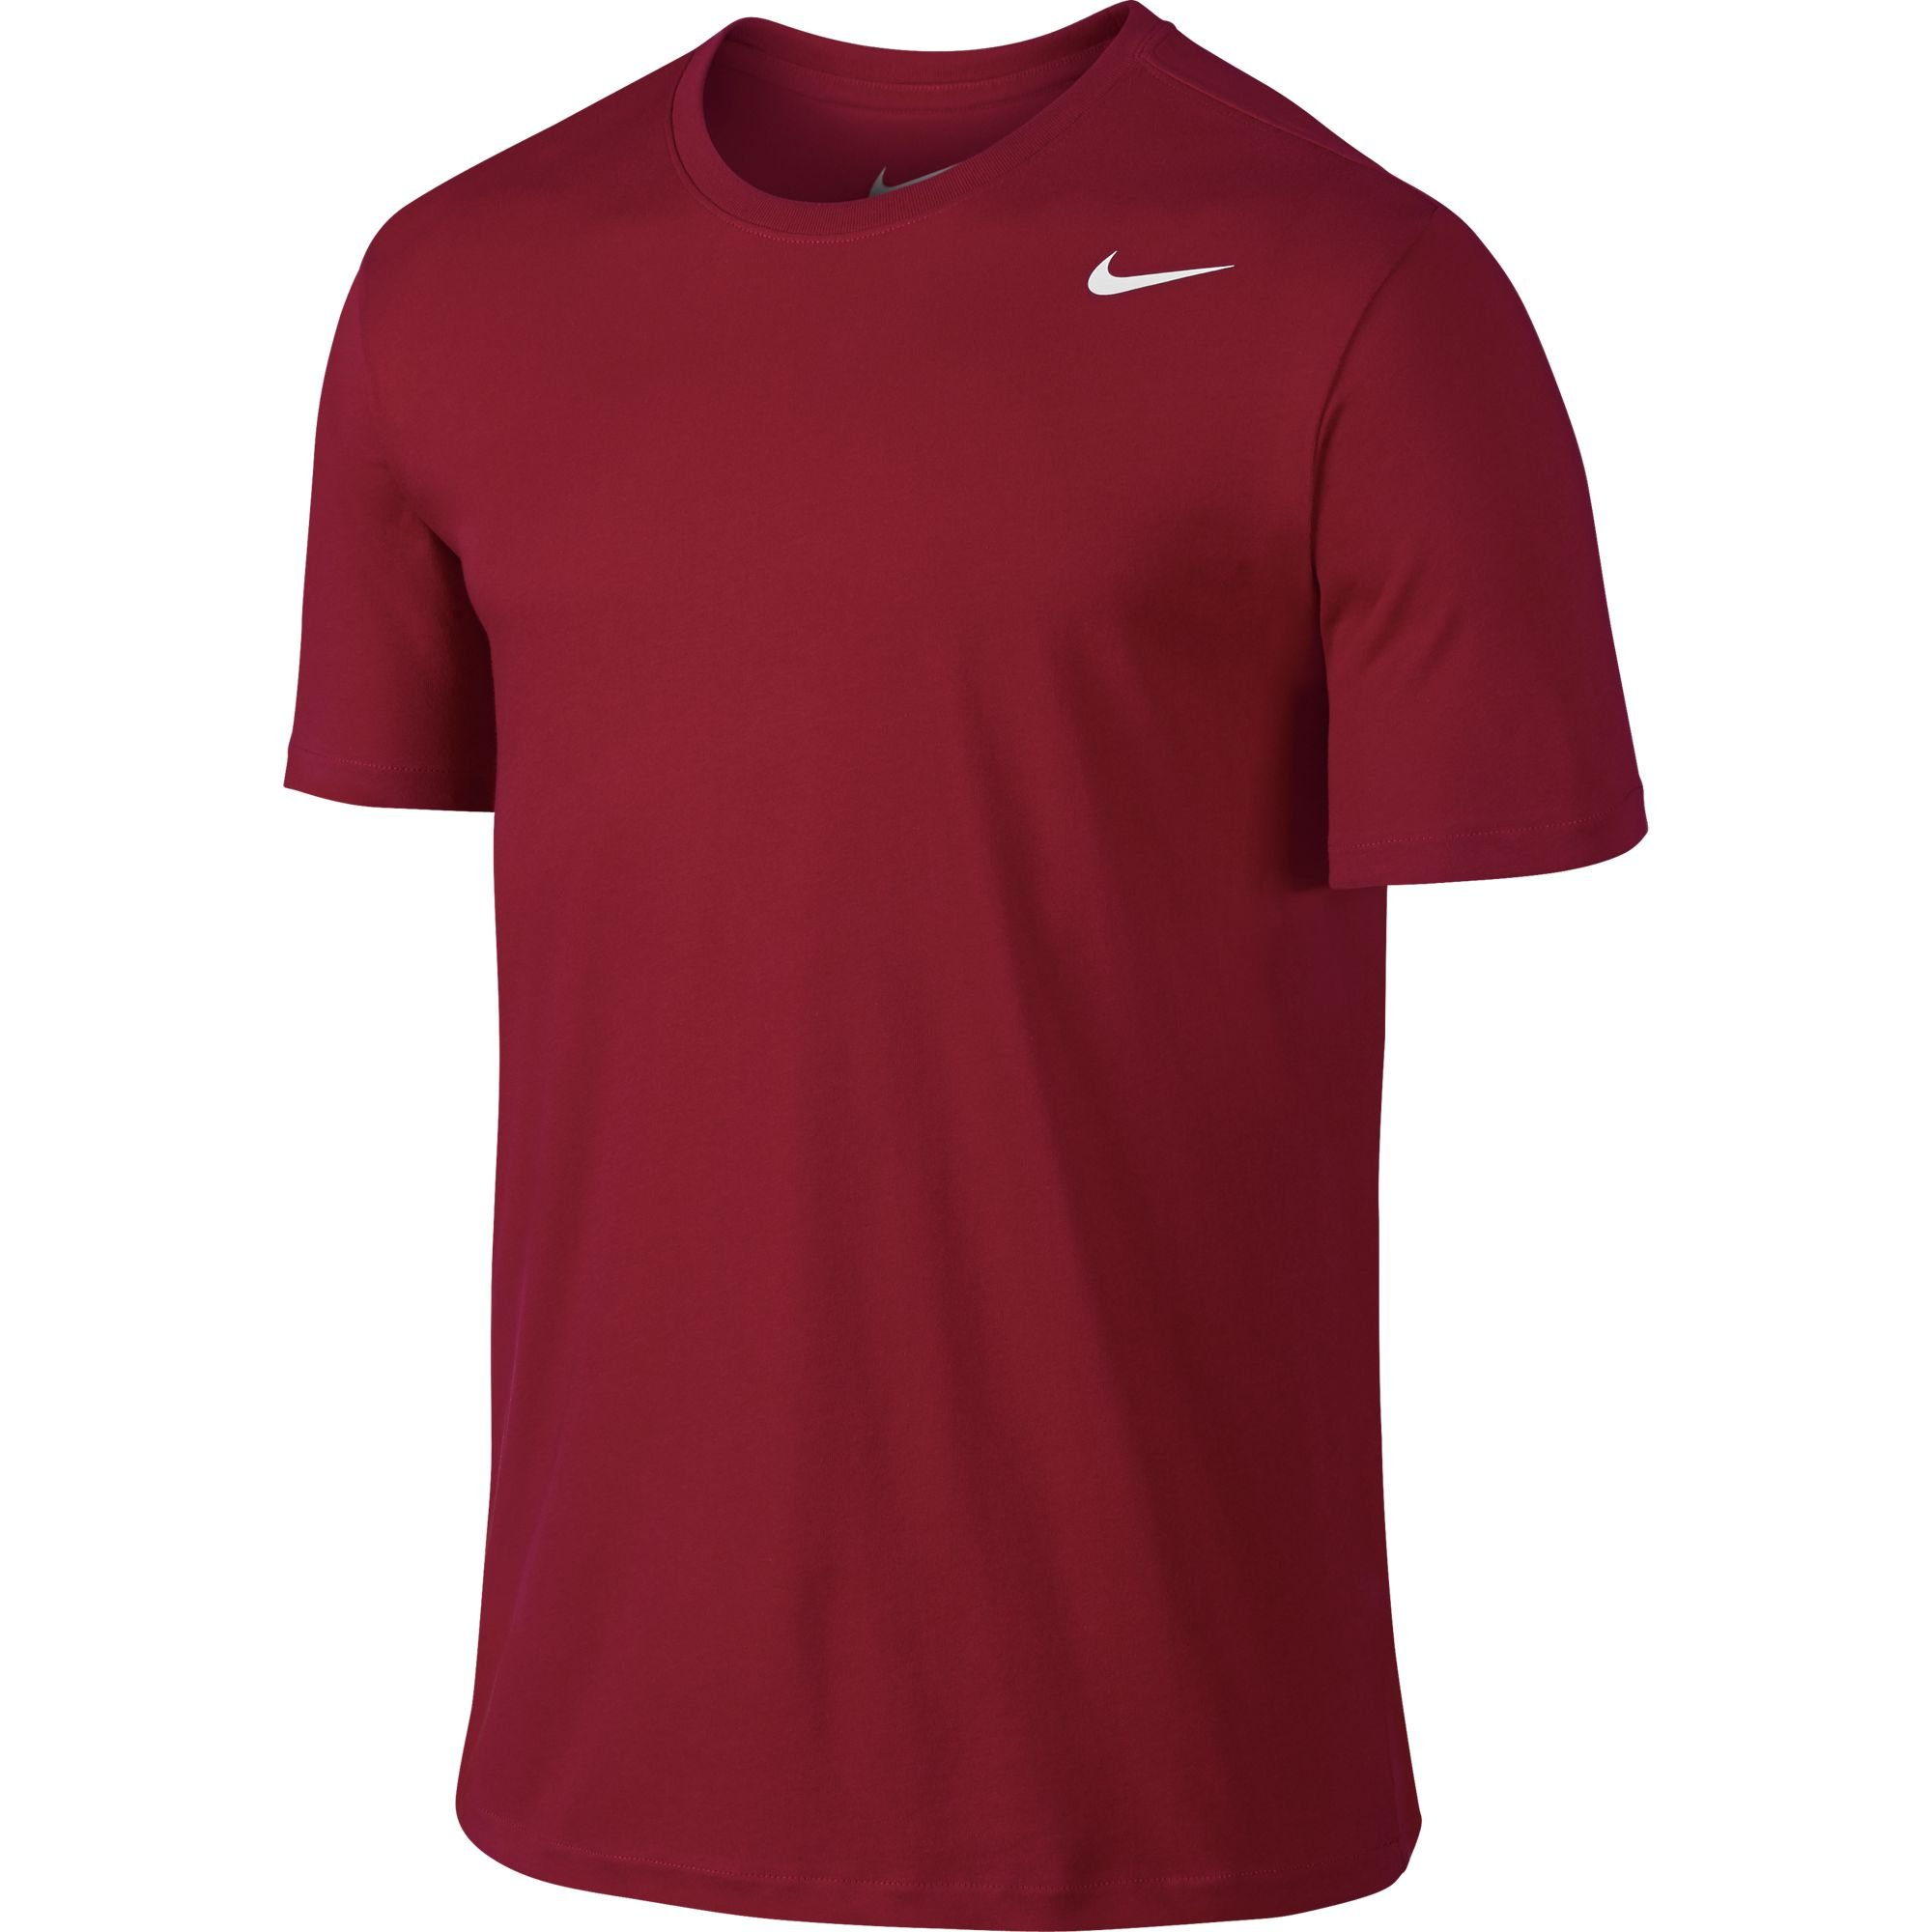 NIKE Men's Dri-FIT Cotton 2.0 Tee, Gym Red/Gym Red/White, Small